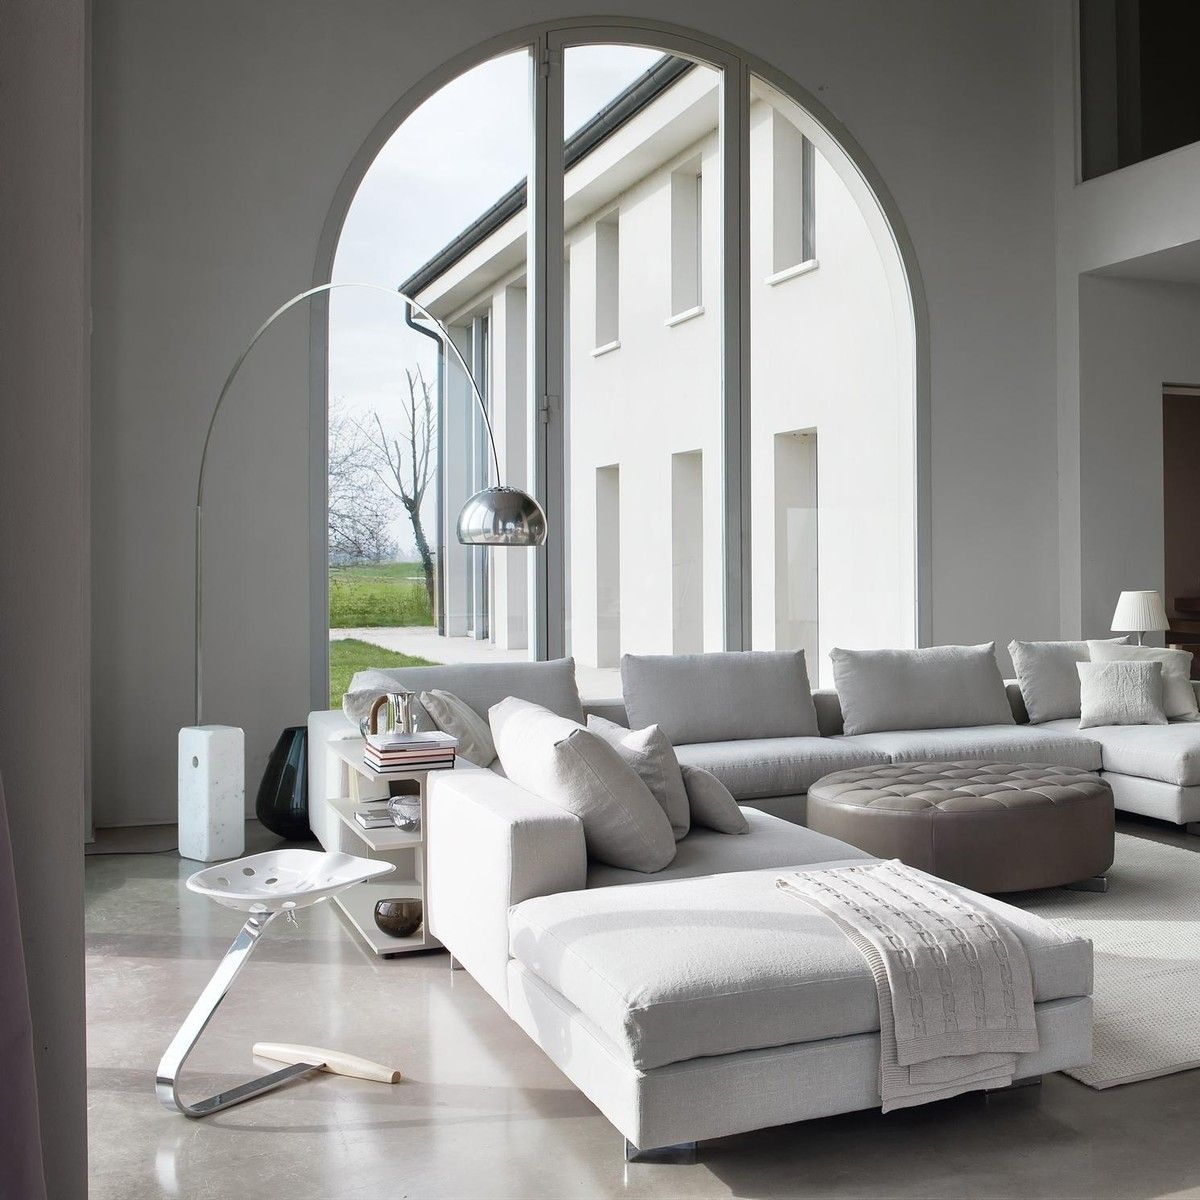 Arco - Vloerlamp | Arco floor lamp, Floor lamp and Room